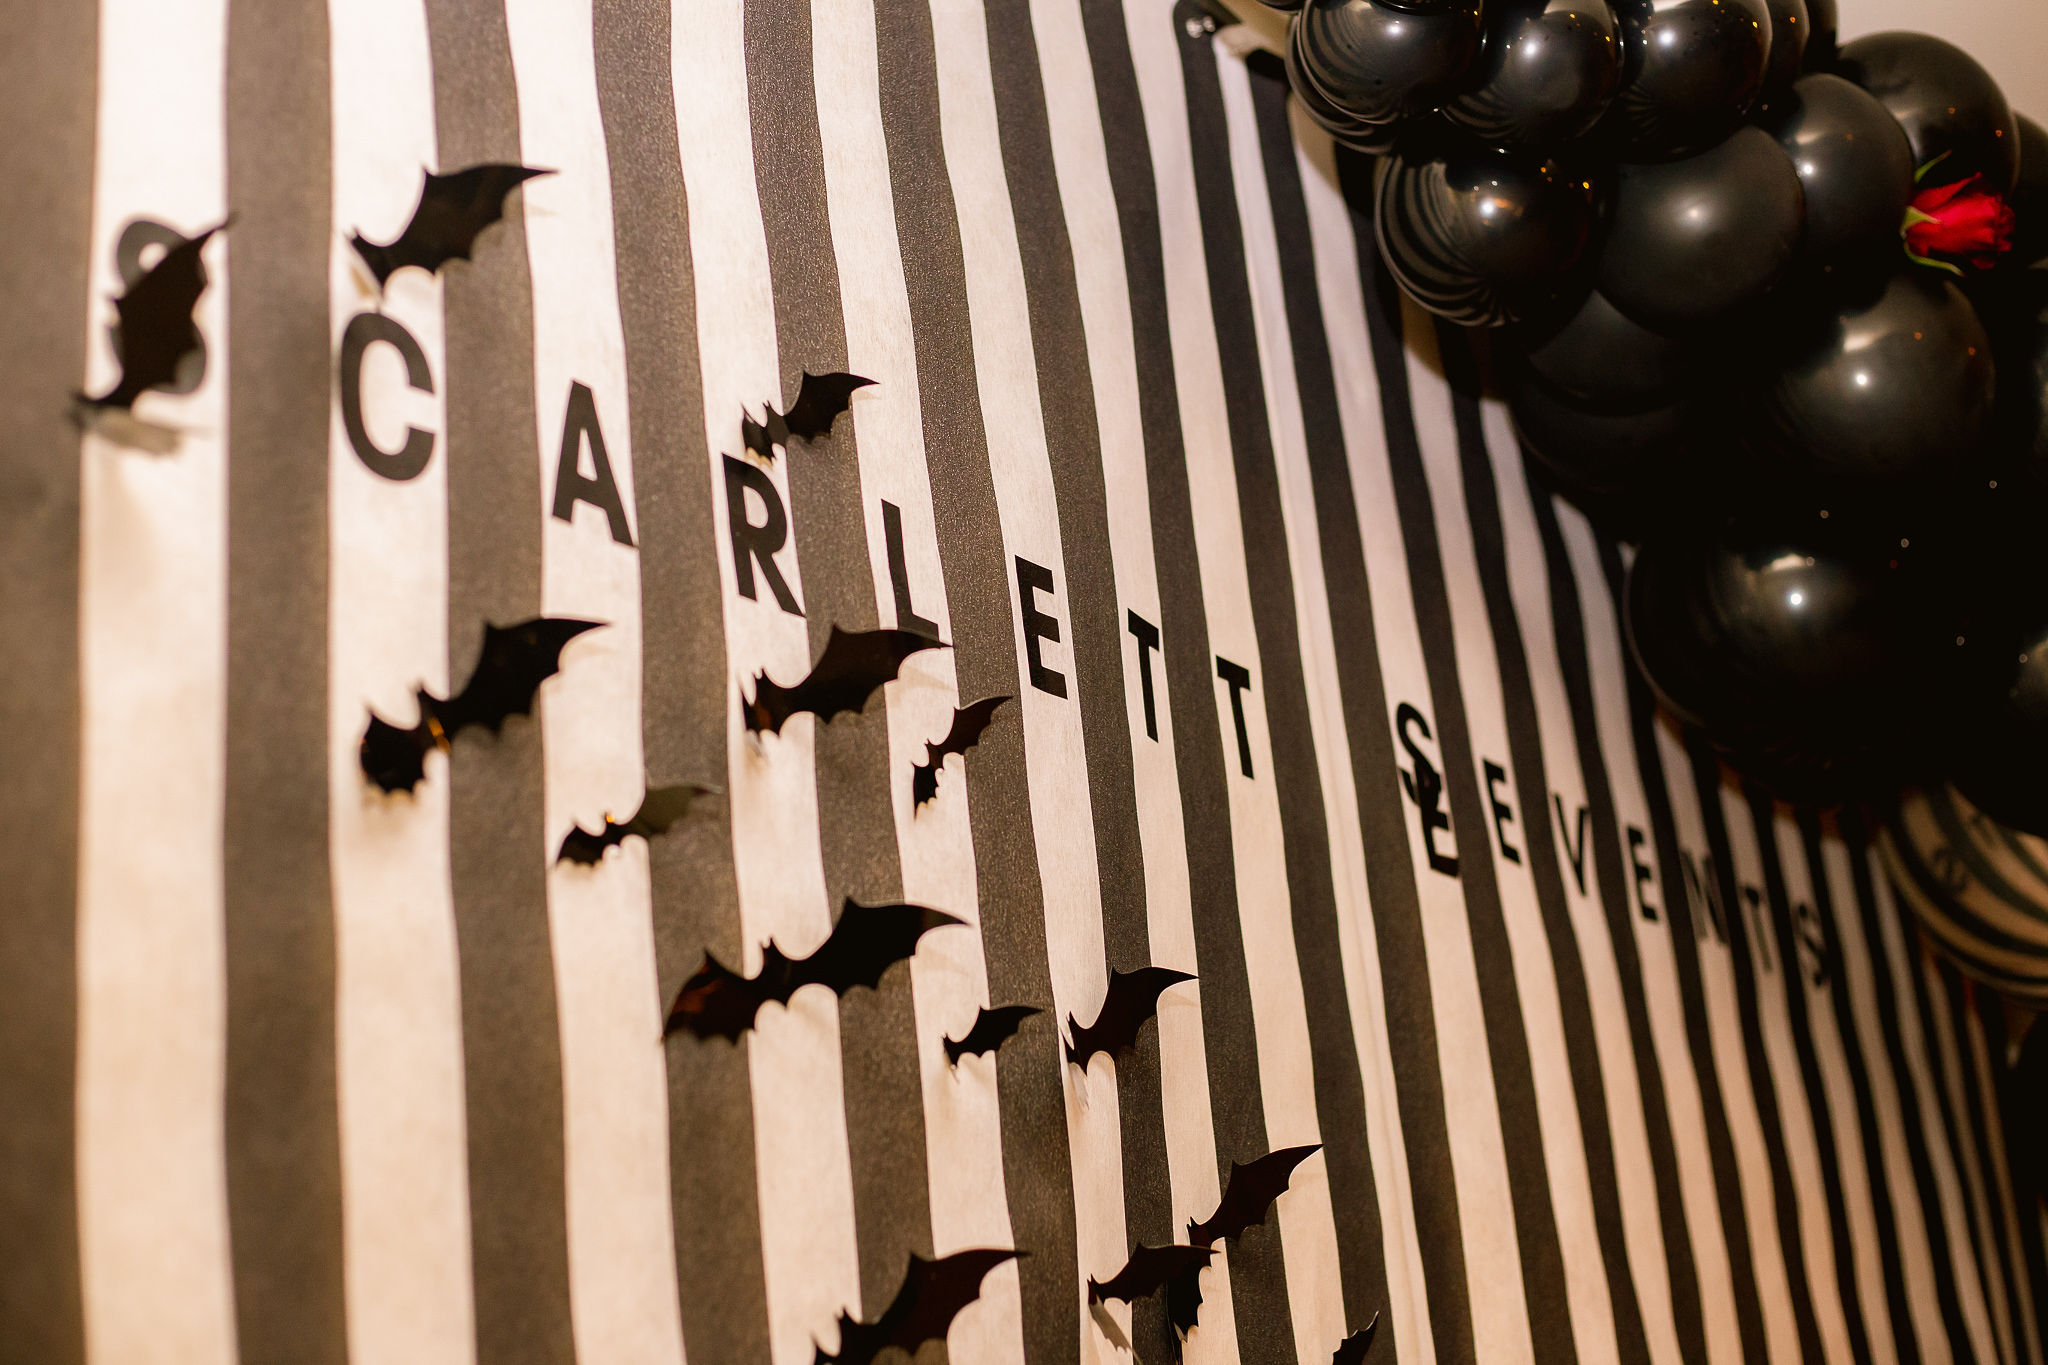 Beetlejuice inspired photo booth wall with bats and balloon installation by Scarlett Events